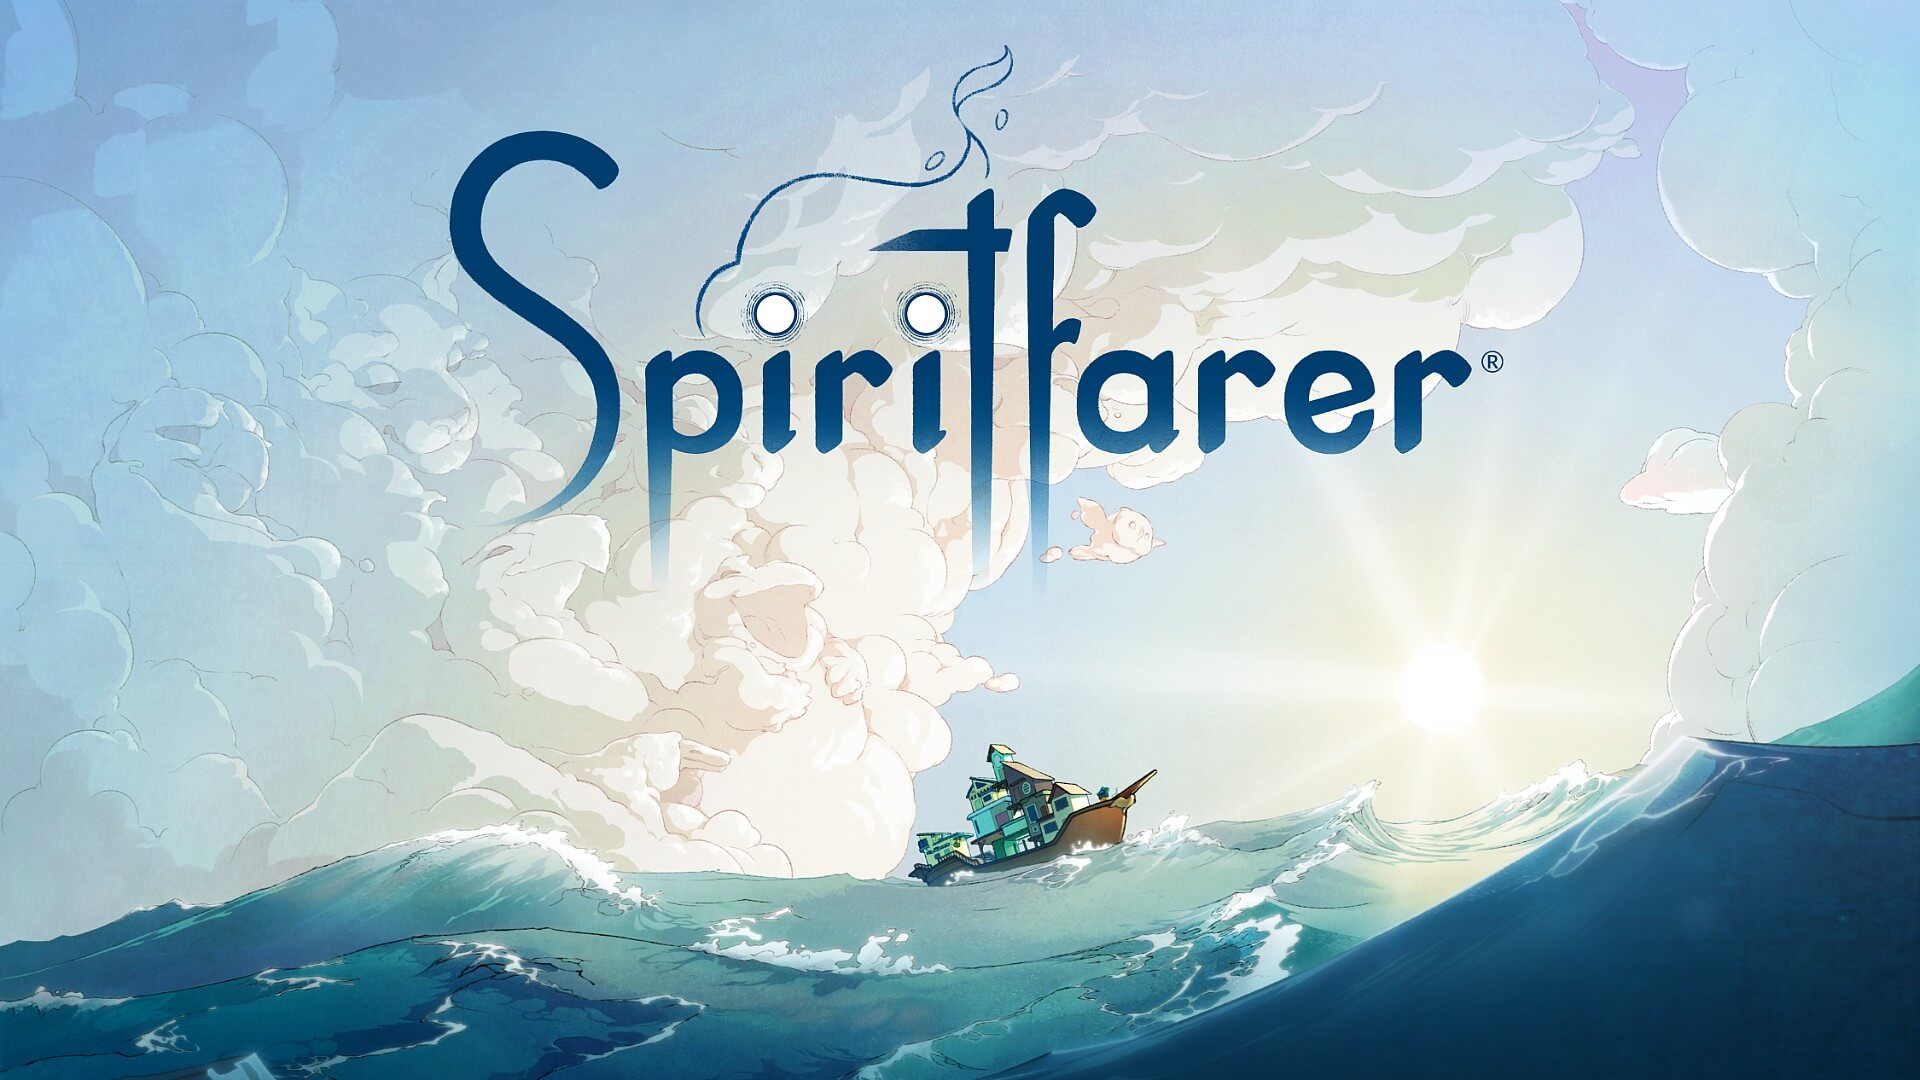 Spiritfarer Review: Delightfully Bittersweet and Moving